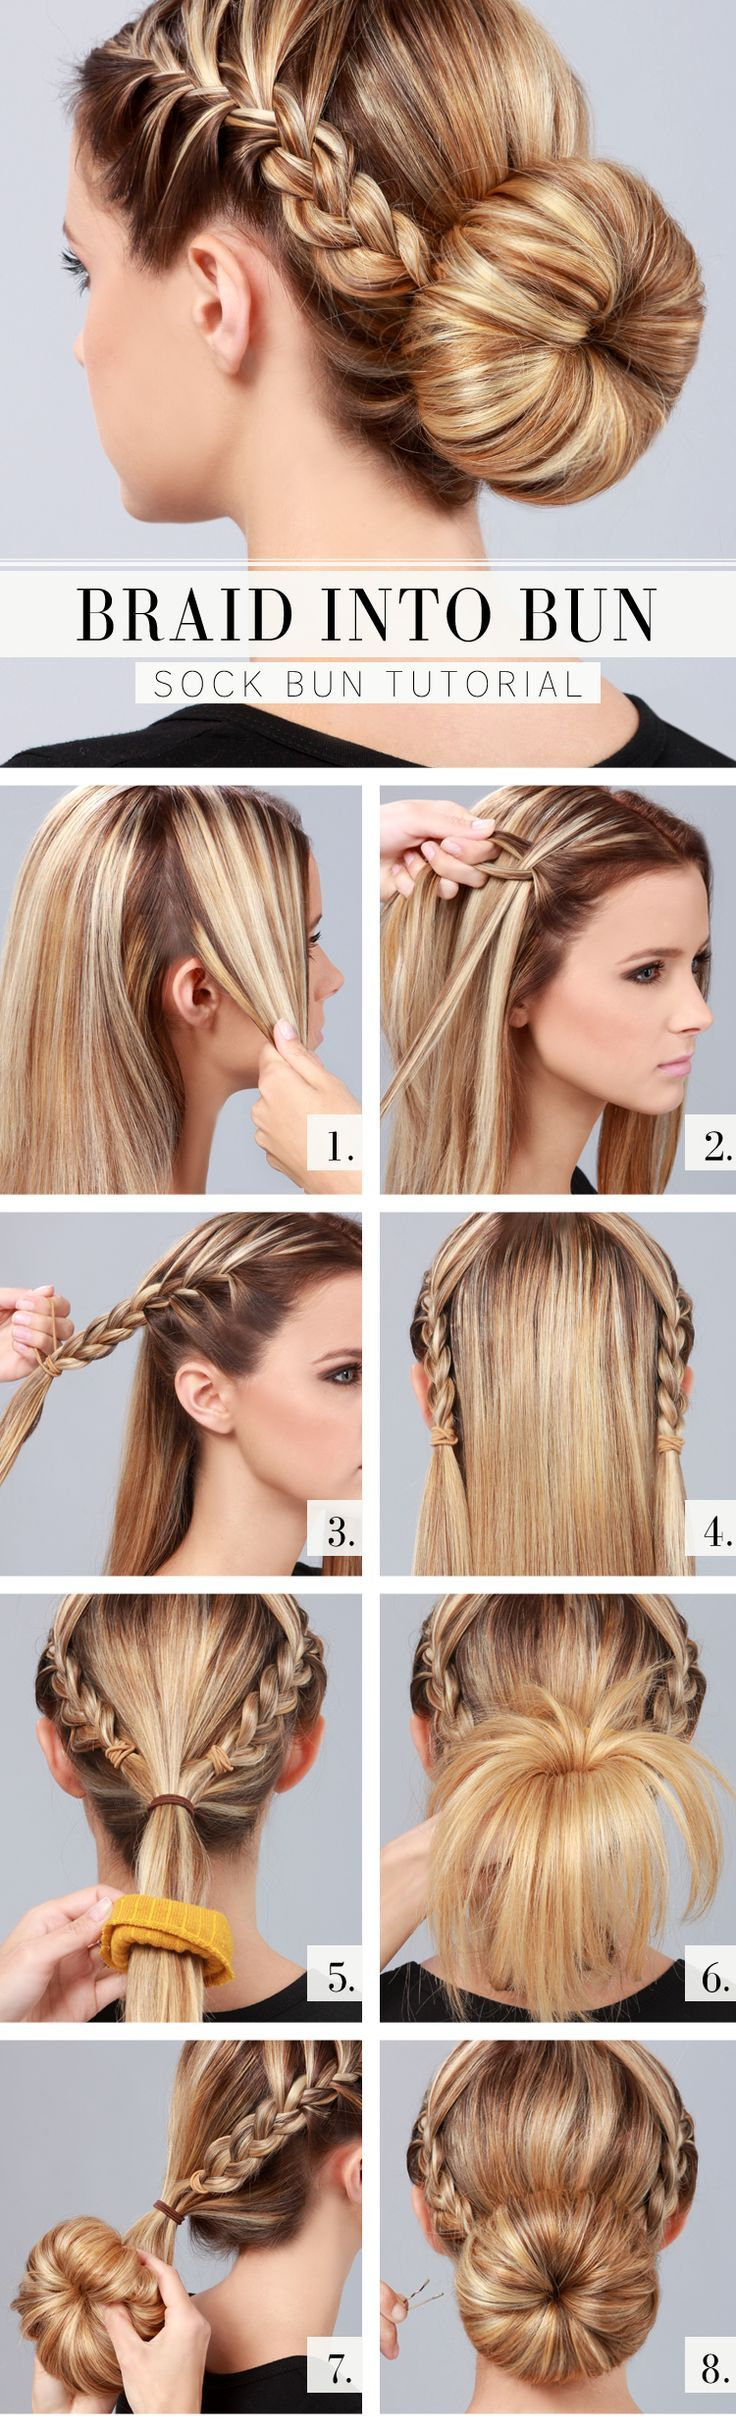 Braid into Bun Hair Tutorial | LuLus | Why decide between a braid and a bun when you can have both!? We turned to our hair guru's in the studio and they came up with the perfect braid into bun look! This tutorial will get you ready to roll a sock bun and bust out perfect braids like a pro. We're quickly thinking this may be our new go-to holiday hair! With gorgeous braids and a full bun, what's not to love?